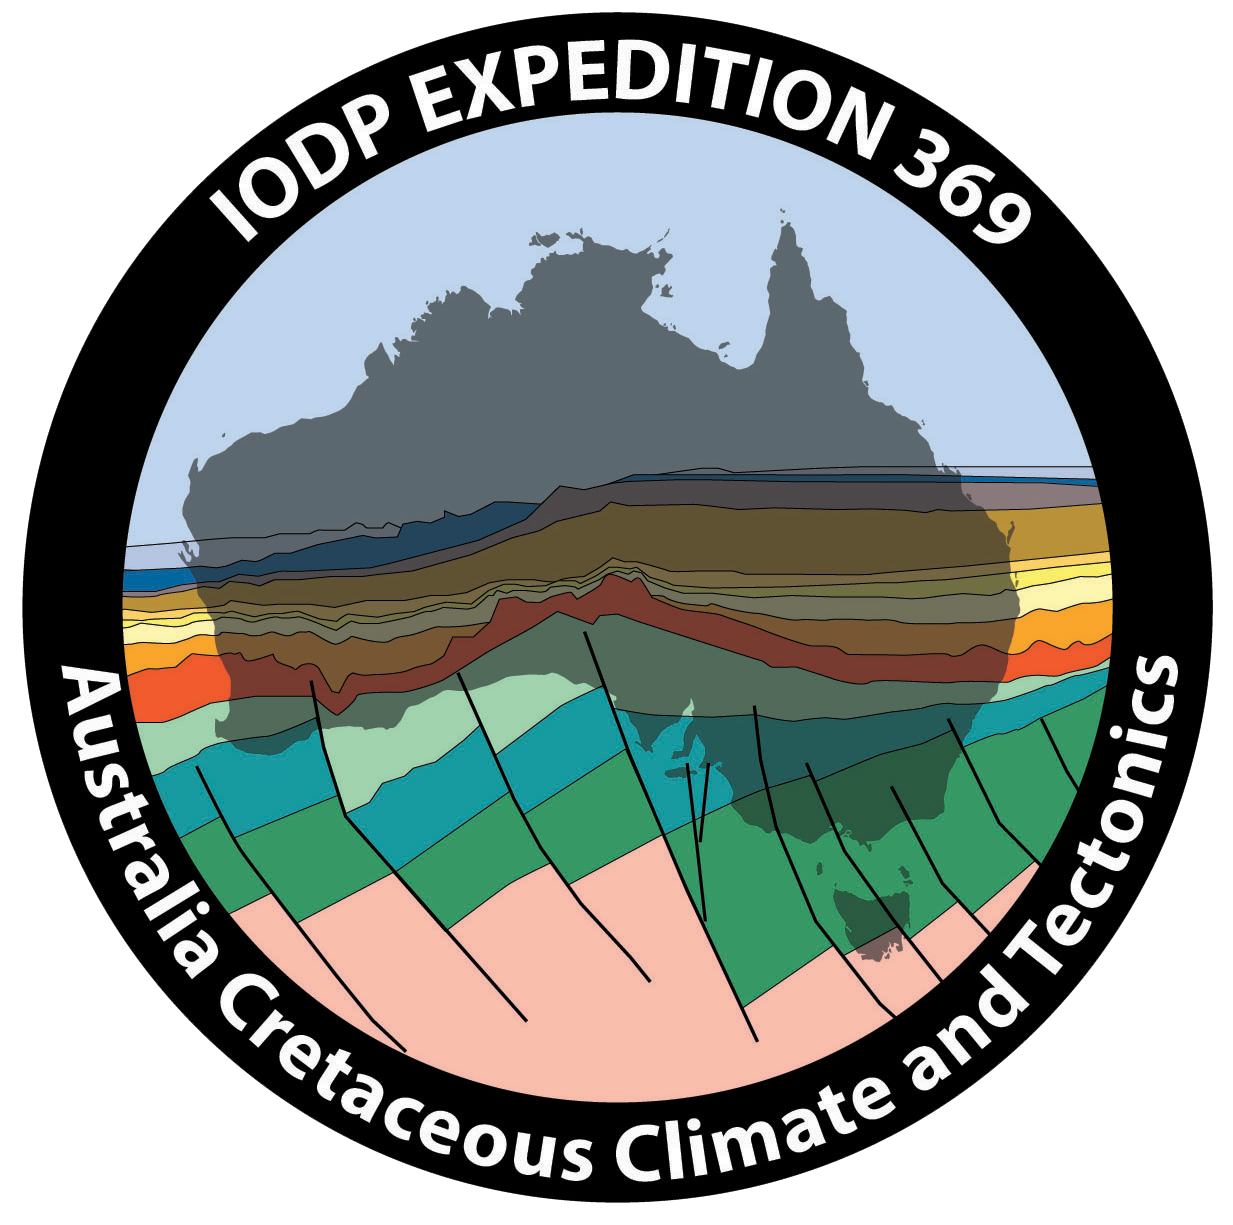 Geology clipart plate tectonic. Australia cretaceous climate and